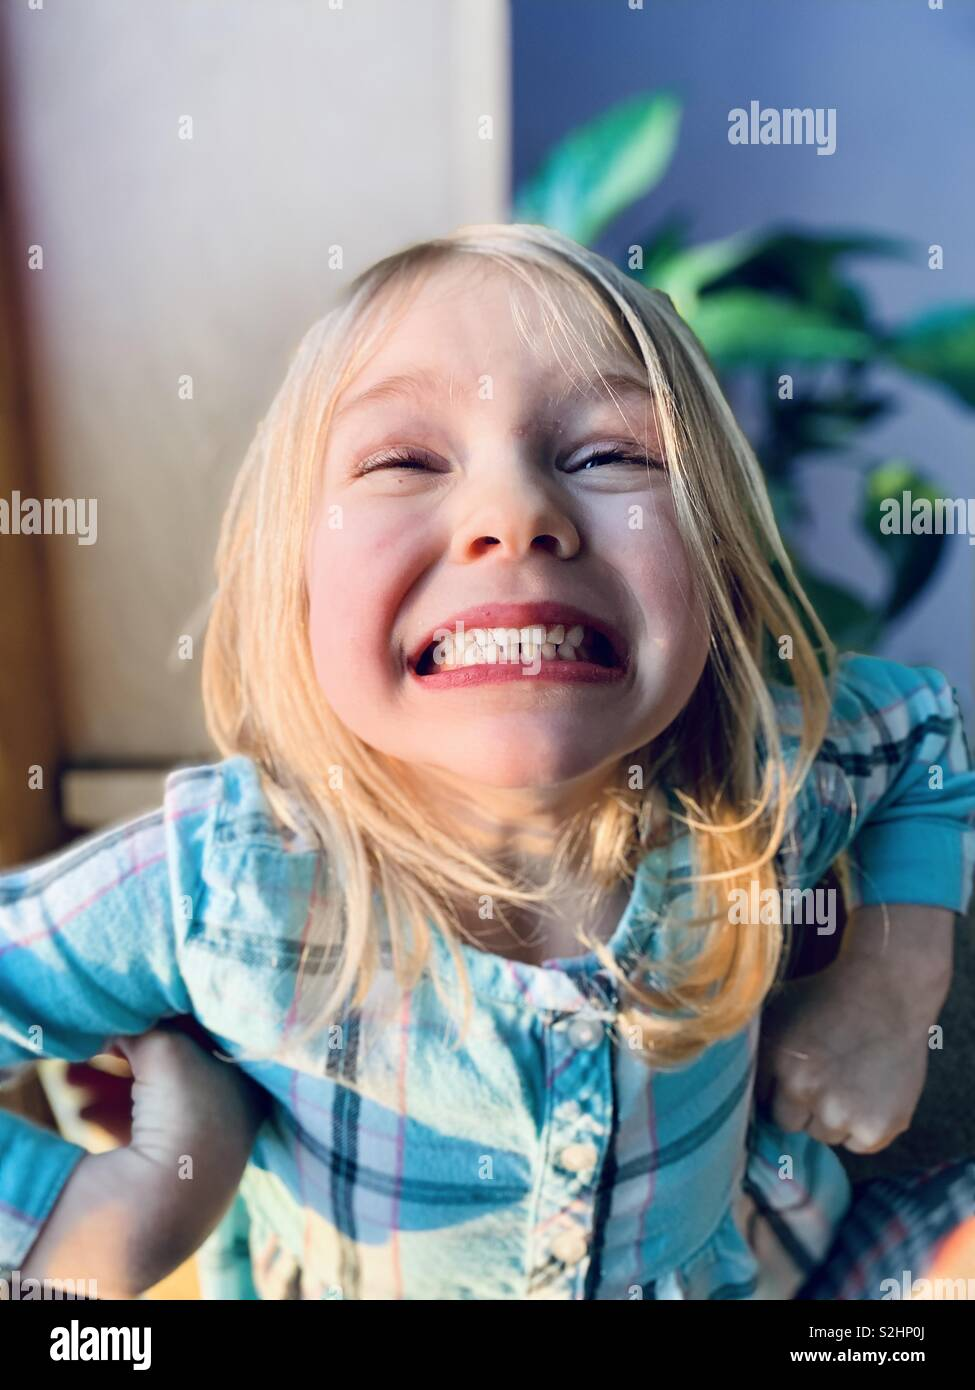 Blonde young girl with a big smile. - Stock Image